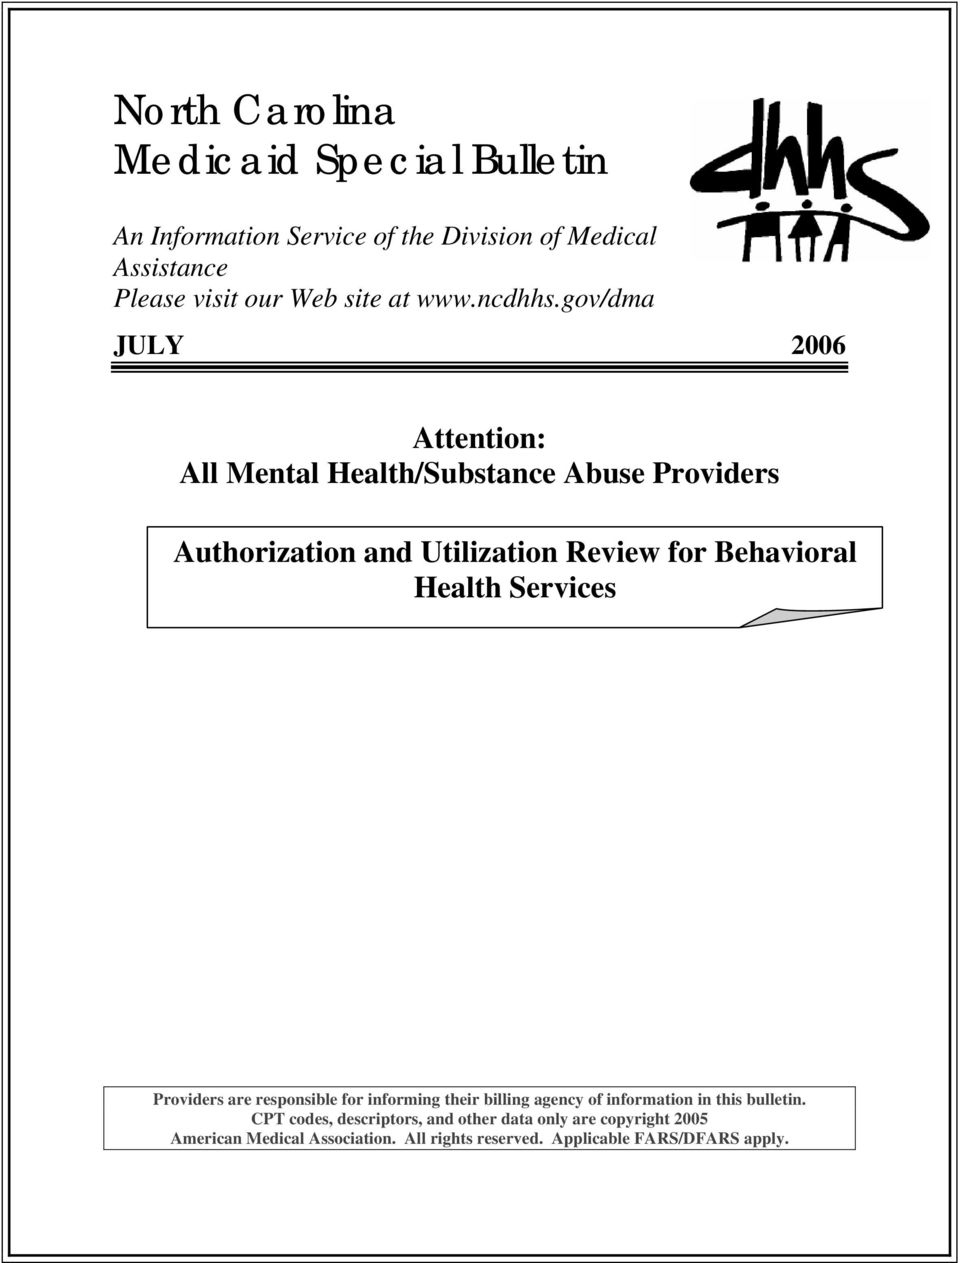 gov/dma JULY 2006 Attention: All Mental Health/Substance Abuse Providers Authorization and Utilization Review for Behavioral